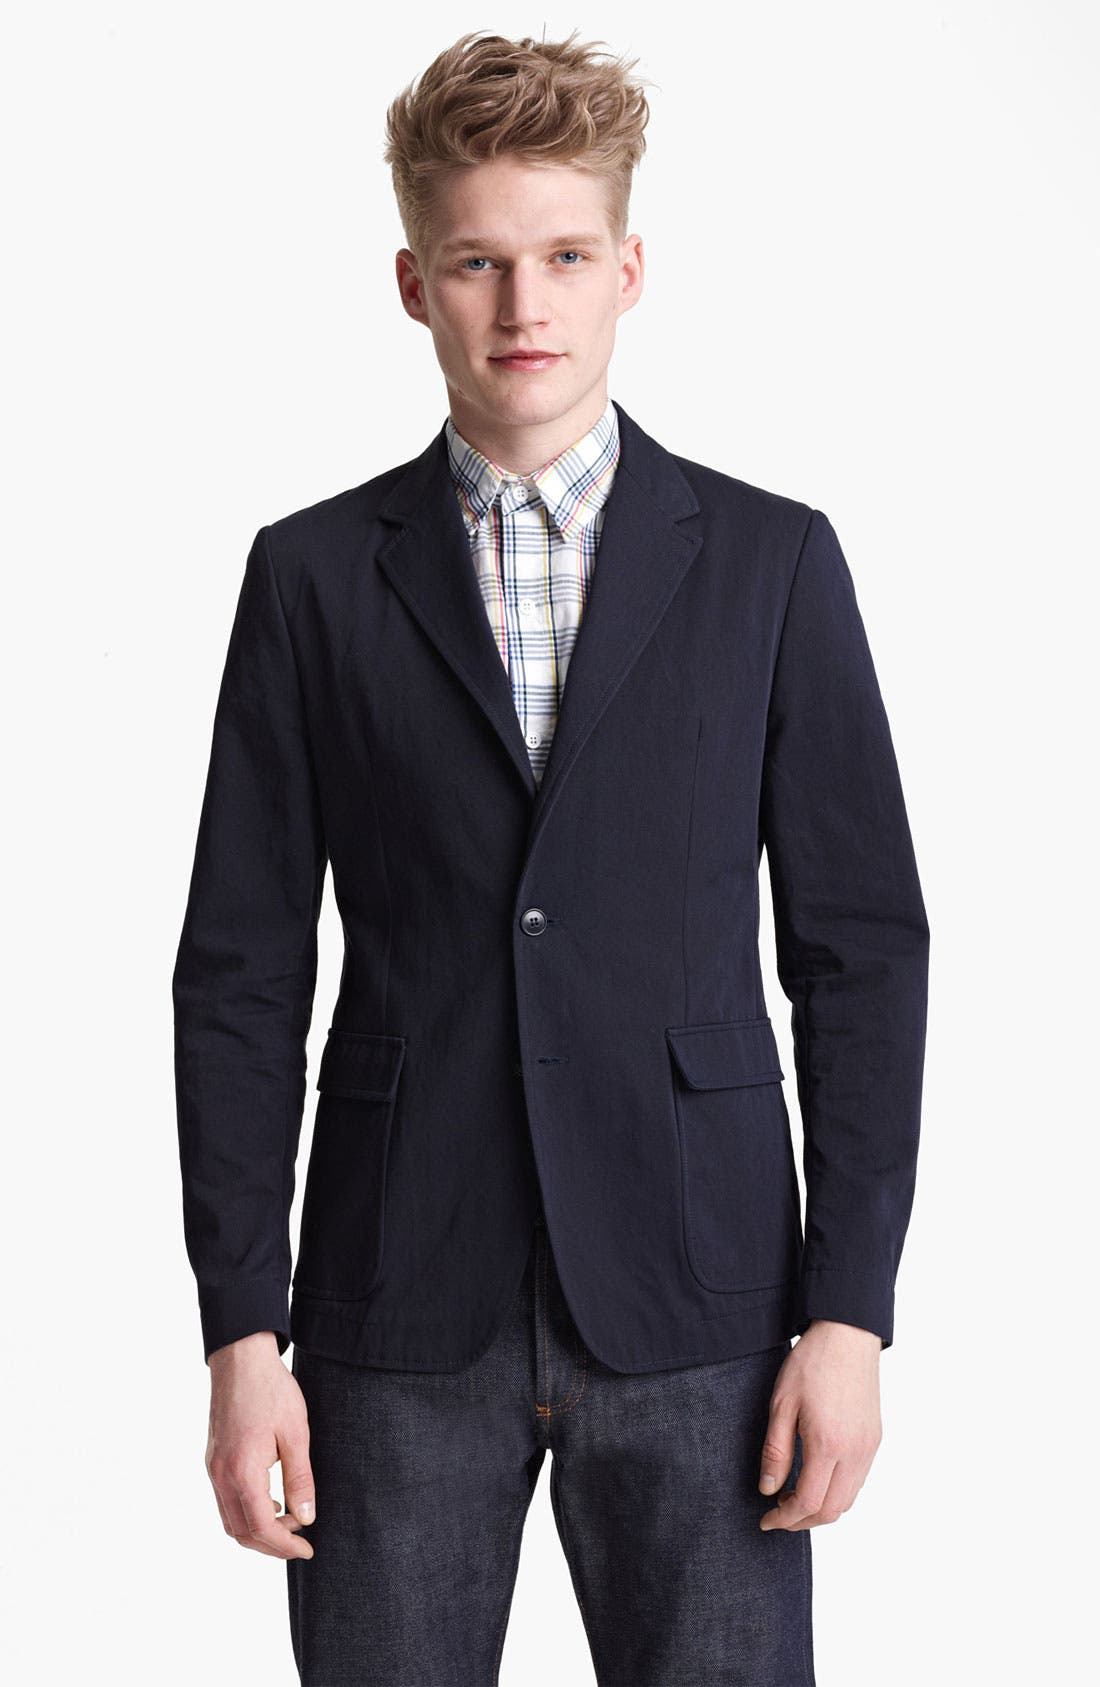 Main Image - Band of Outsiders Cotton Blazer